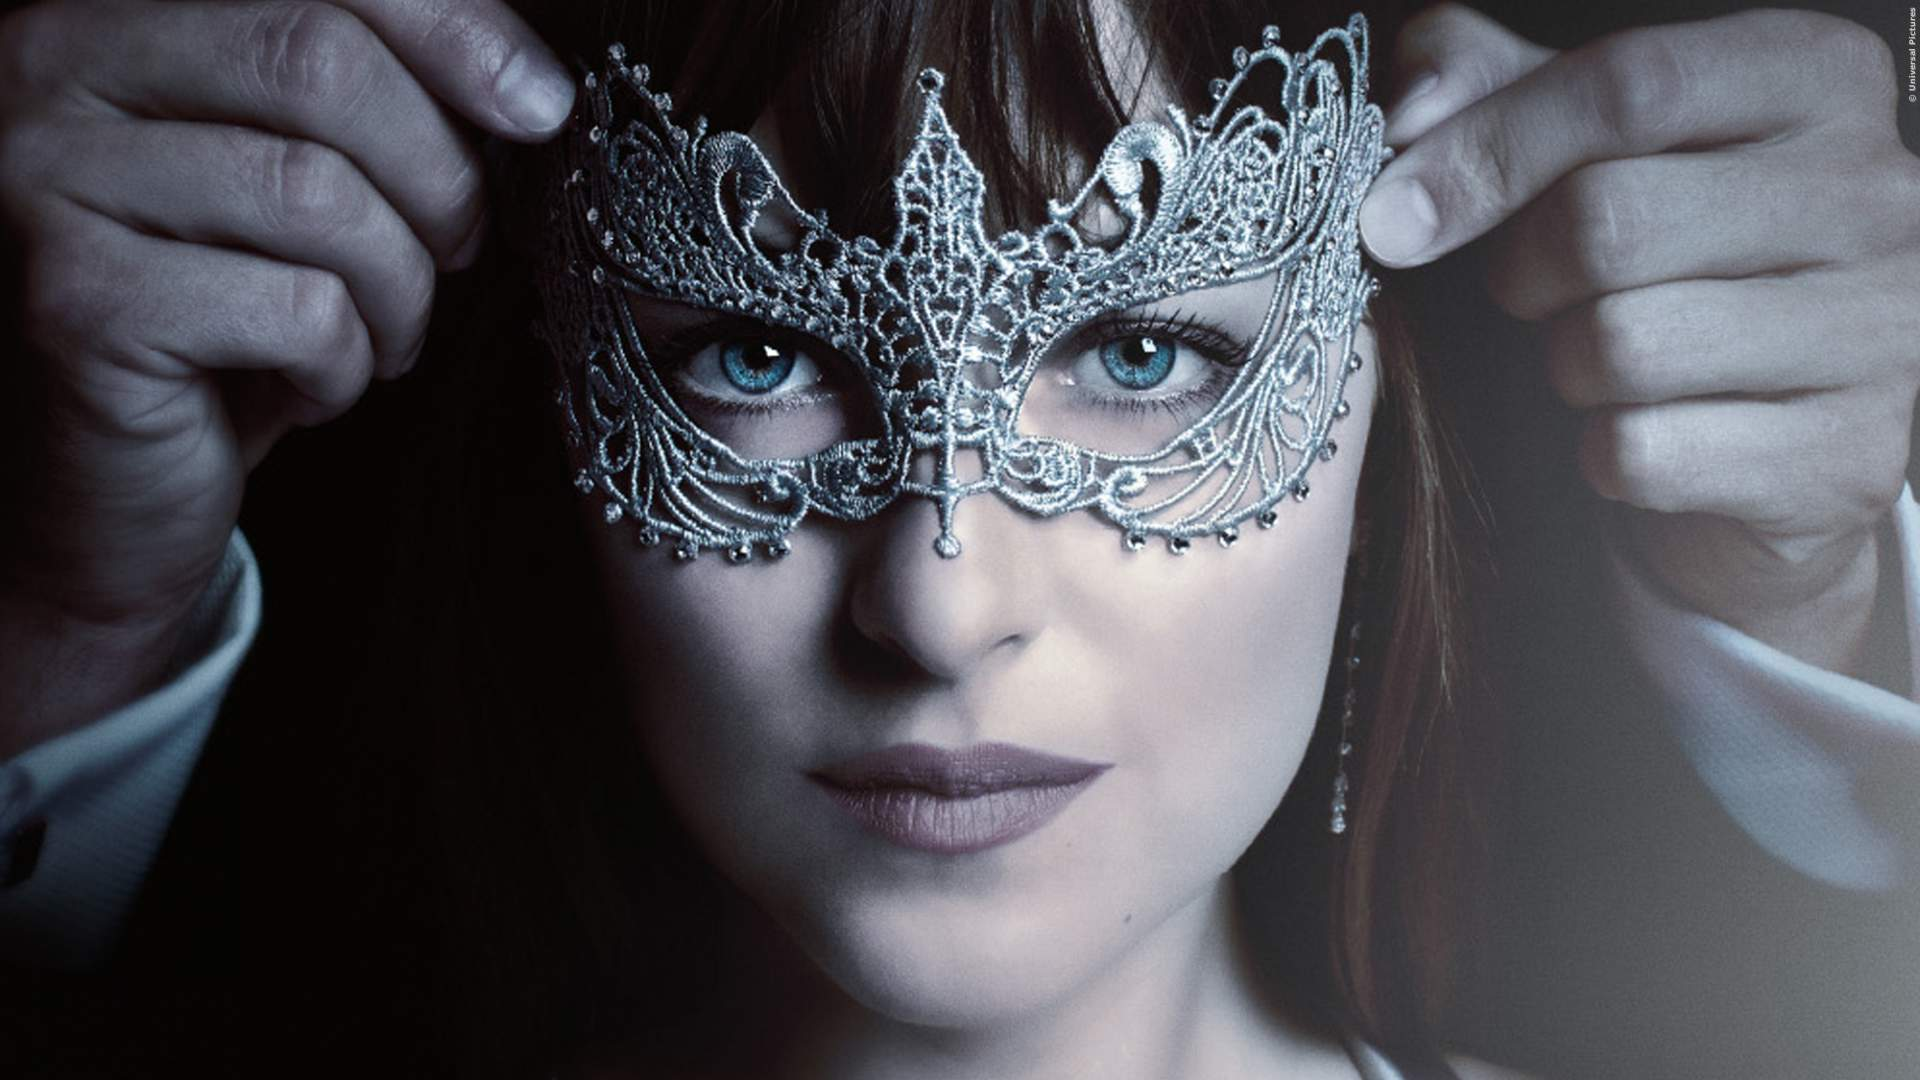 Fifty Shades Of Grey 2 Soundtrack: Die Musik zum Film - Bild 1 von 5